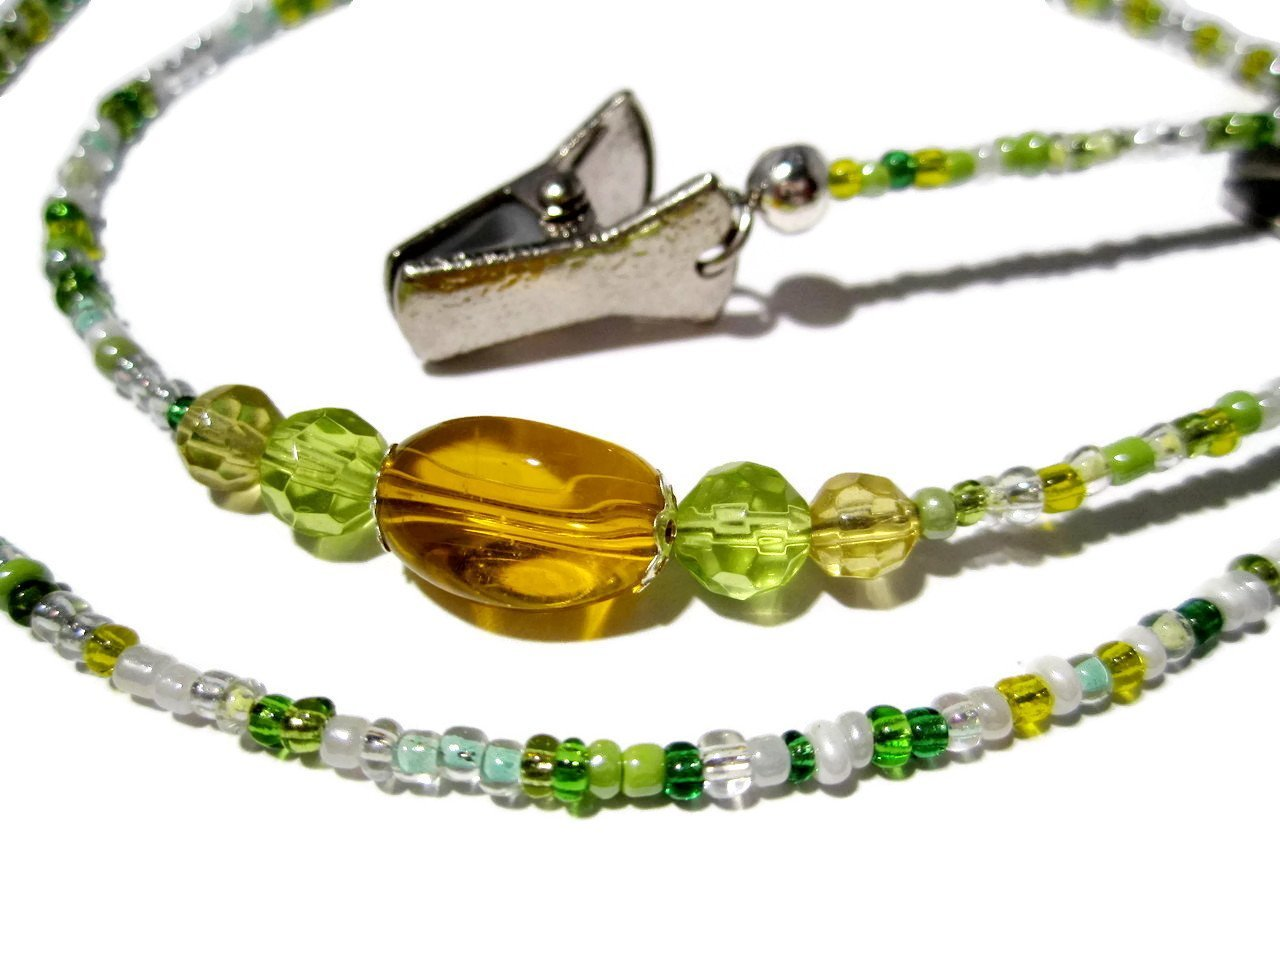 ATLanyards Yellow and Green Eyeglass Holder - Beaded Eyeglass Chain With Clips by ATLanyards